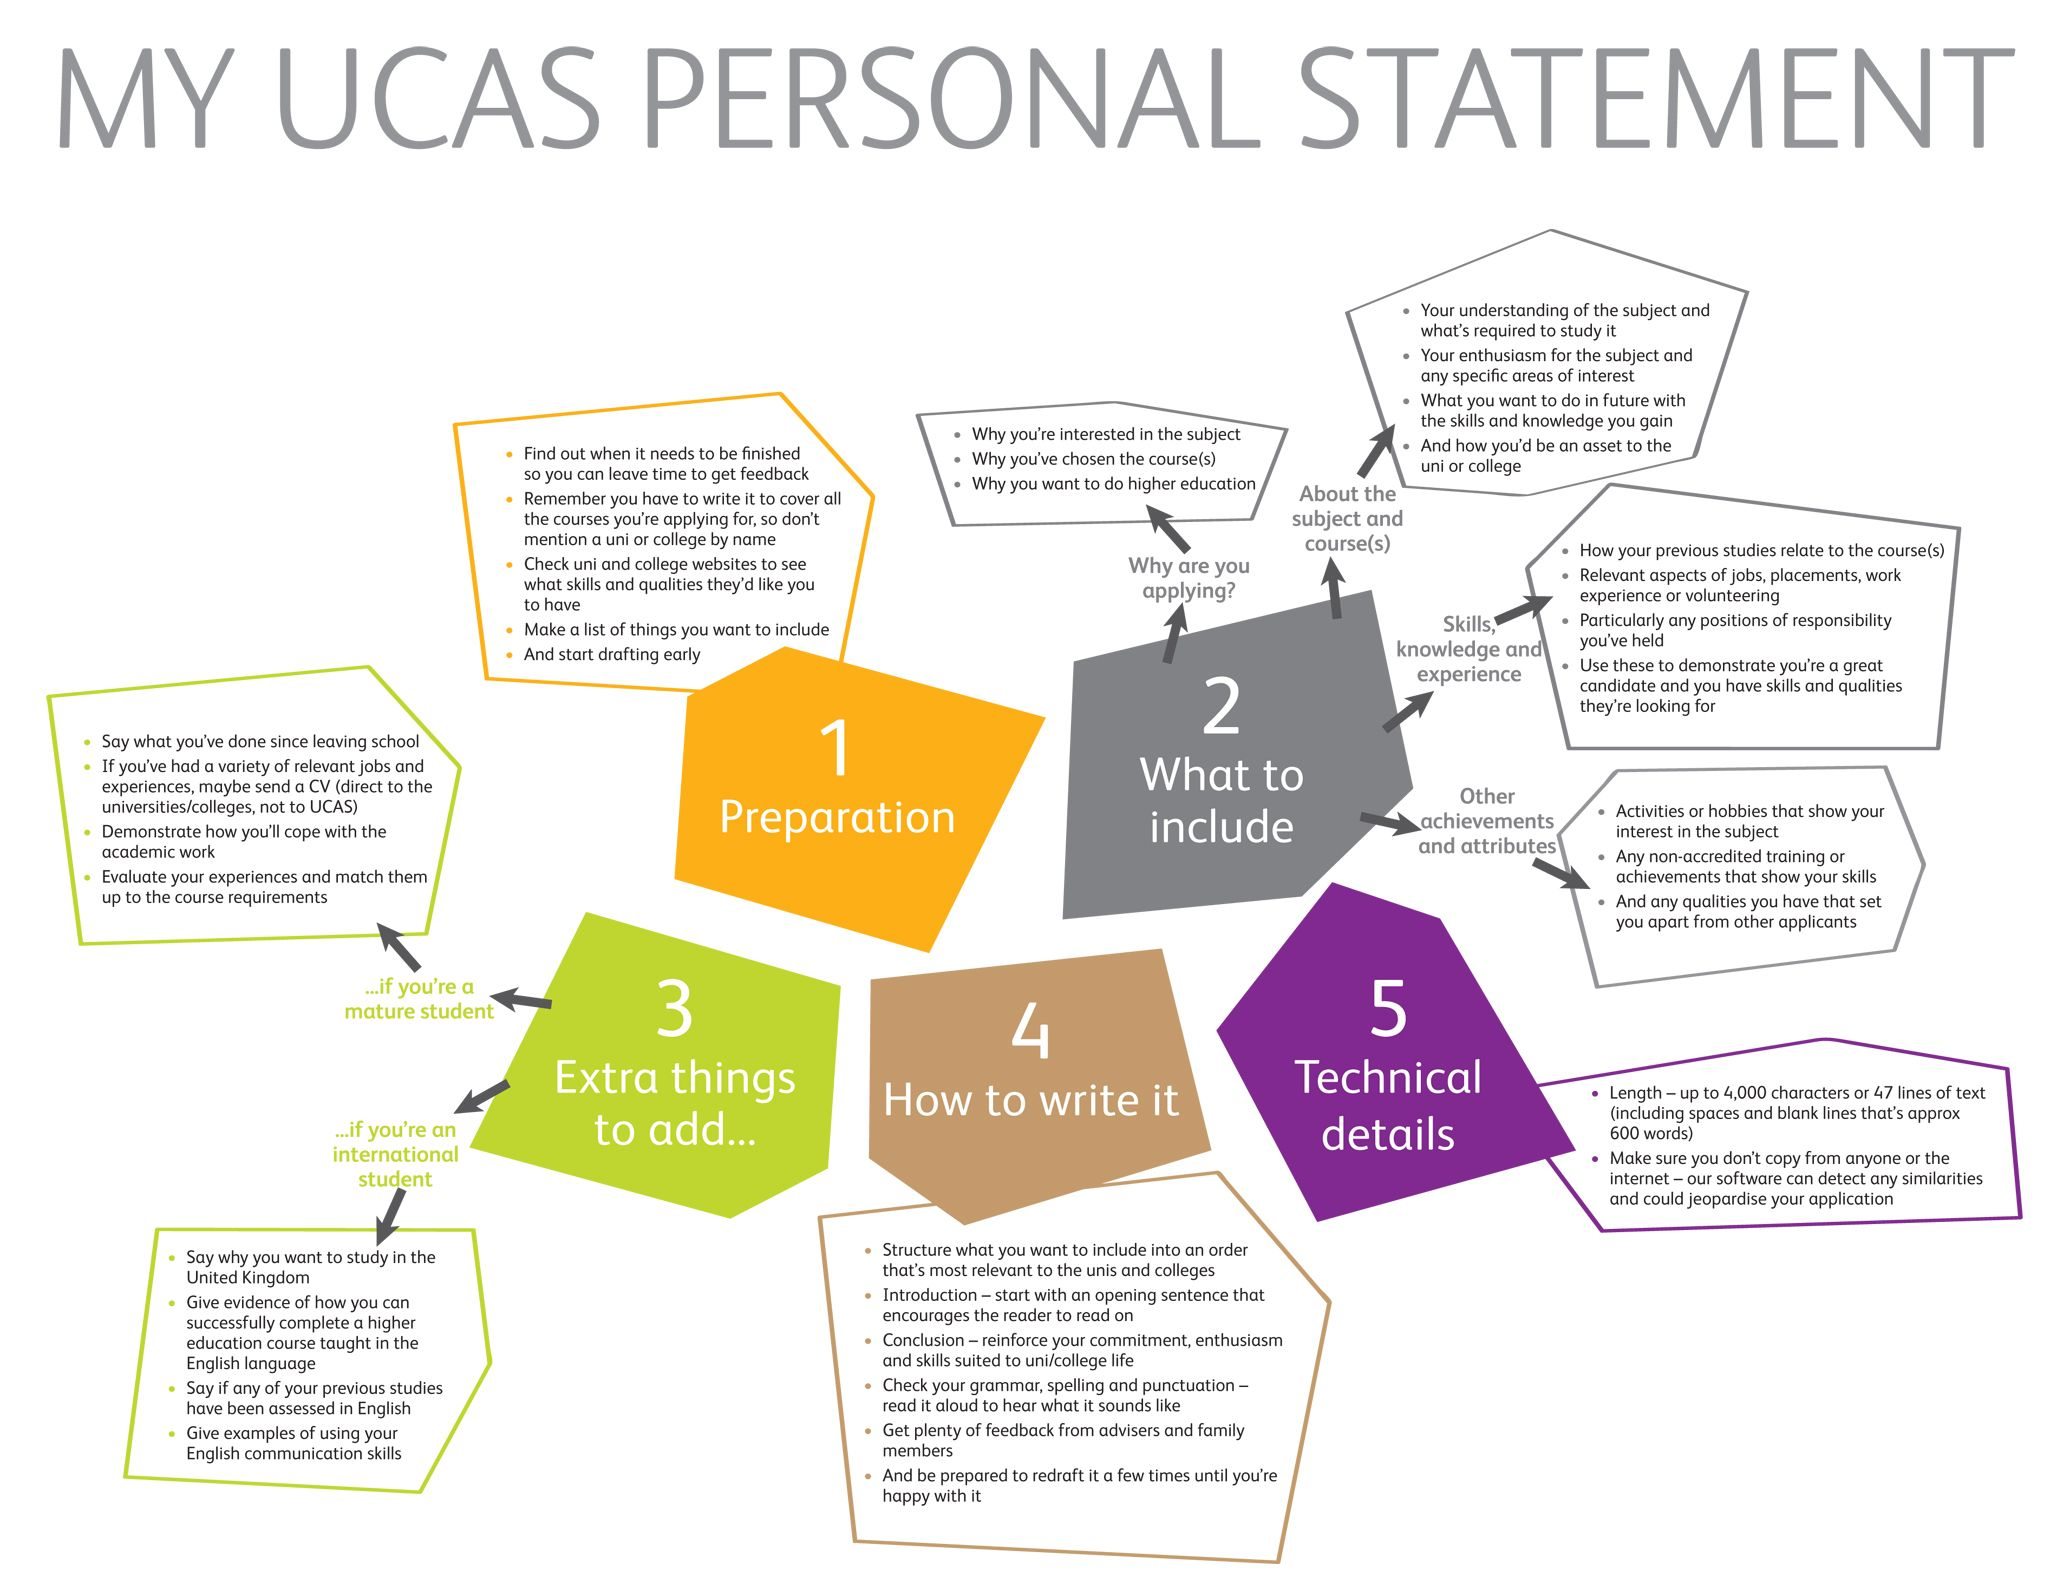 tips for writing a good ucas personal statement Closing the case on writing a personal statements for a law degree how to write a ucas statement tips for ucas applications for law degrees.